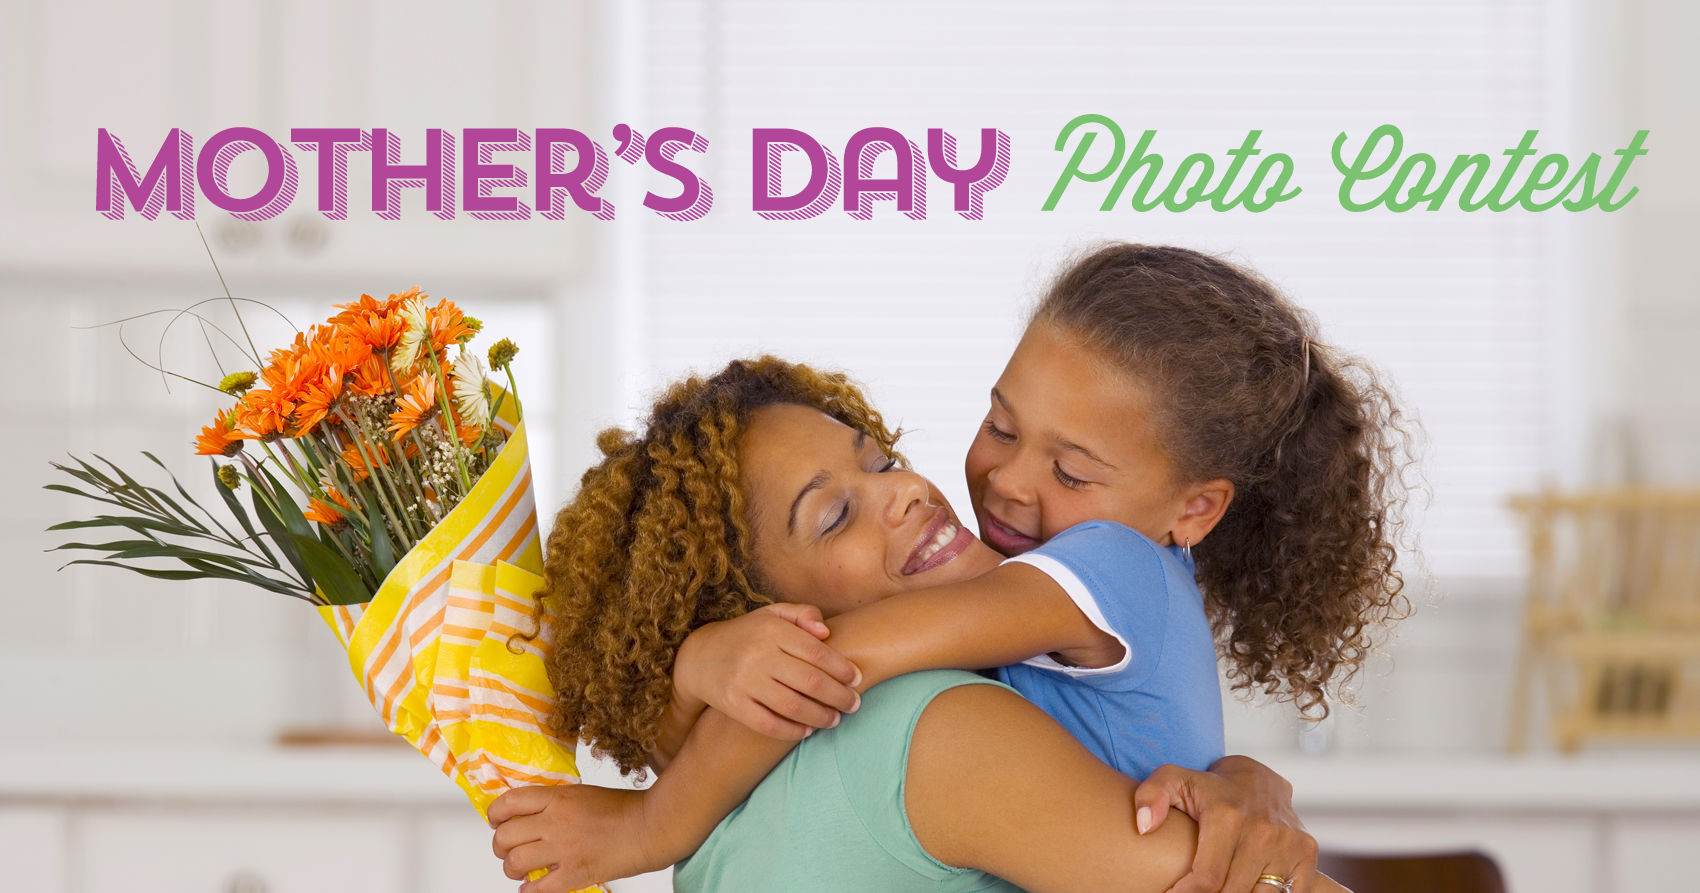 2016 Mother's Day Photo Contest